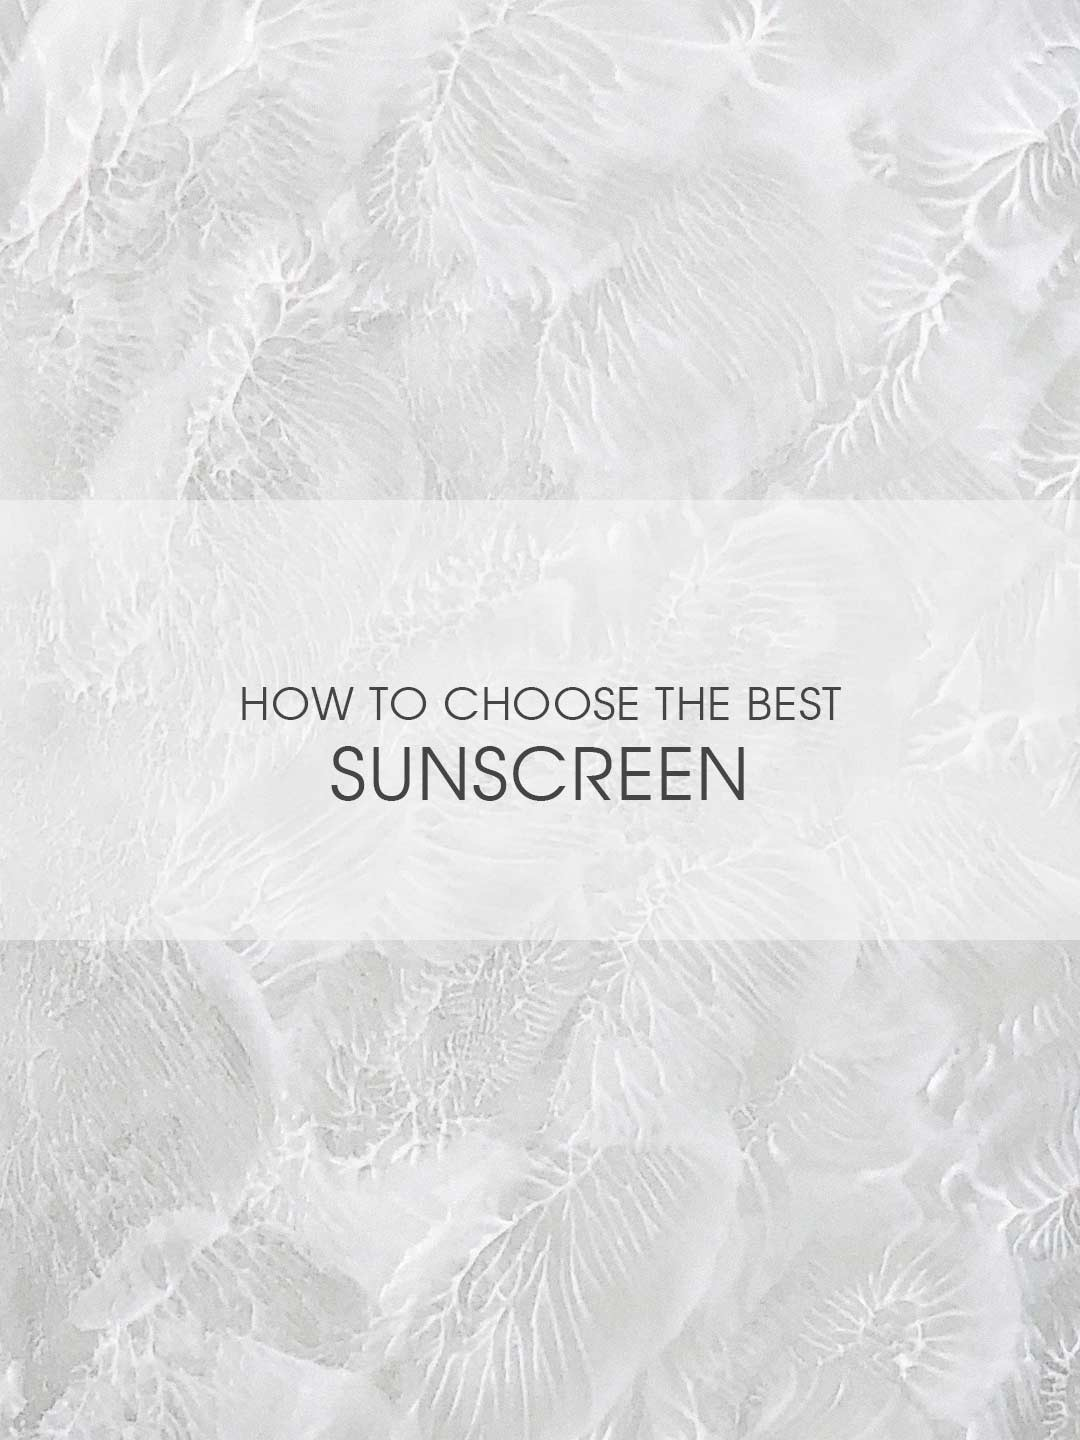 The Moisturizer - How to choose the best sunscreen